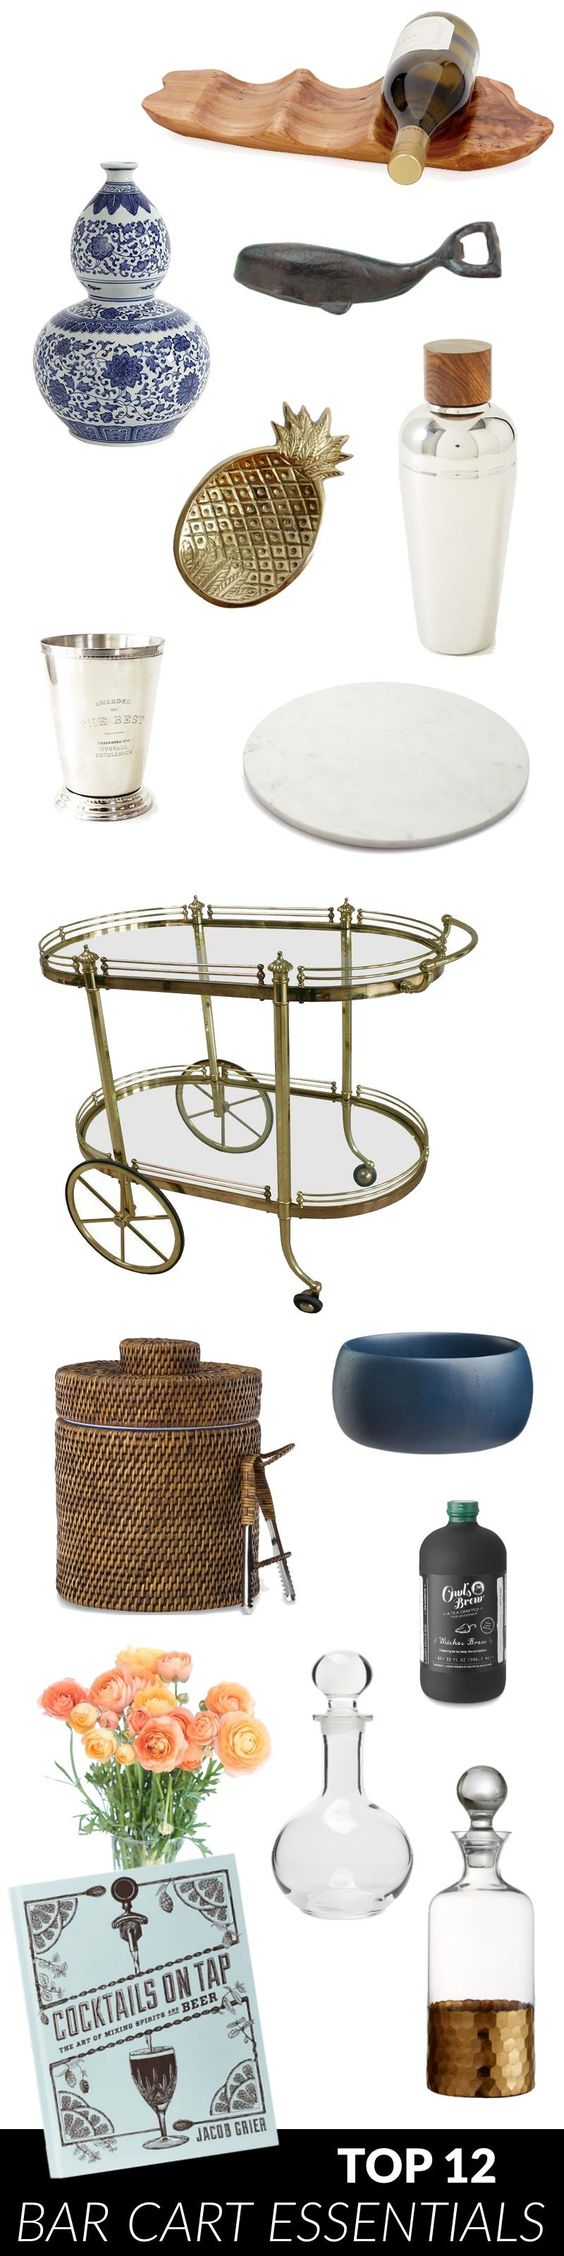 Top 12 Bar Cart Styling Essentials // via StyleInSimplicity.com